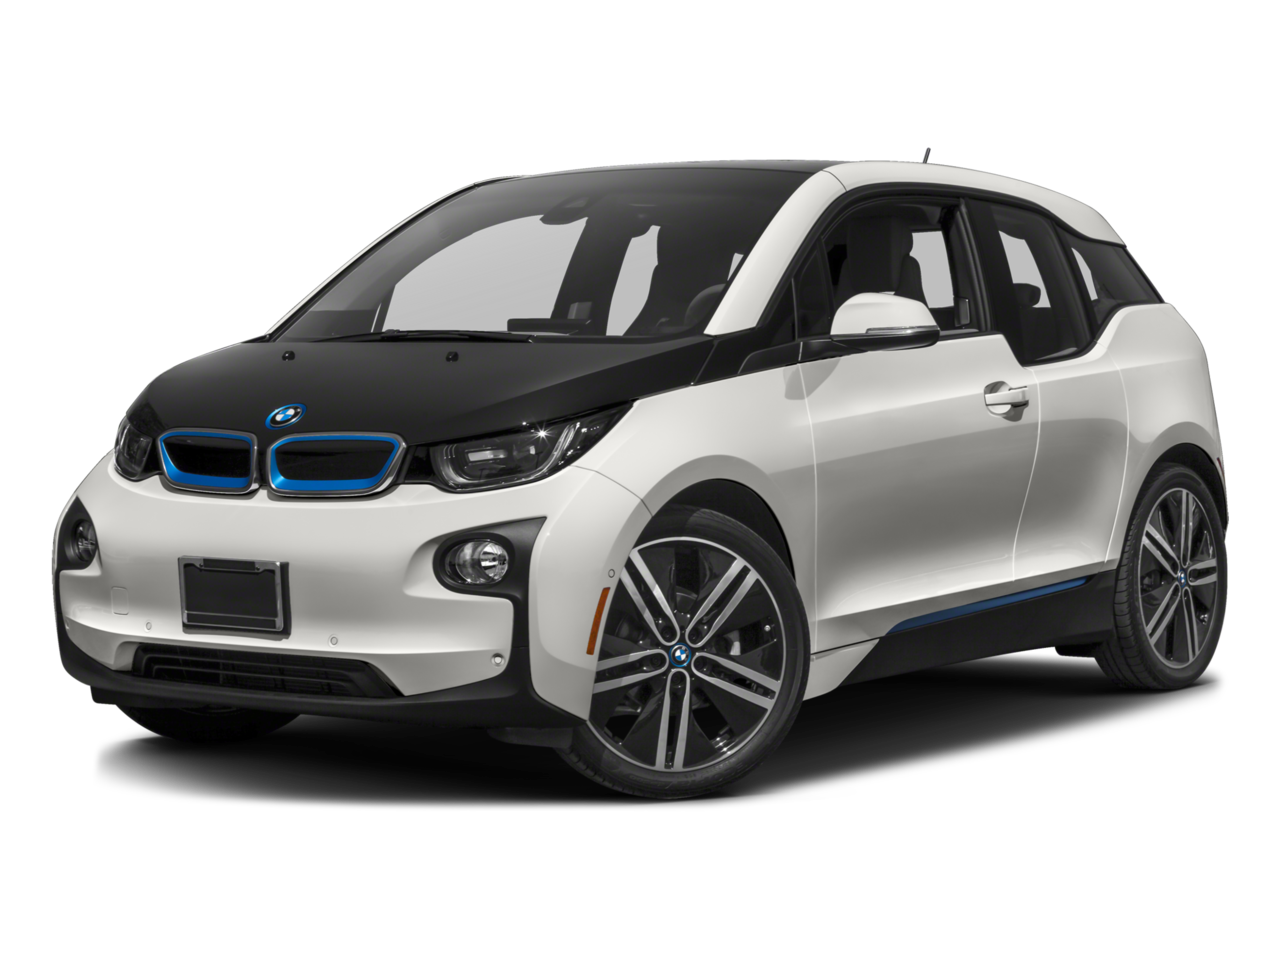 2016 BMW i3 - Huntington, NY